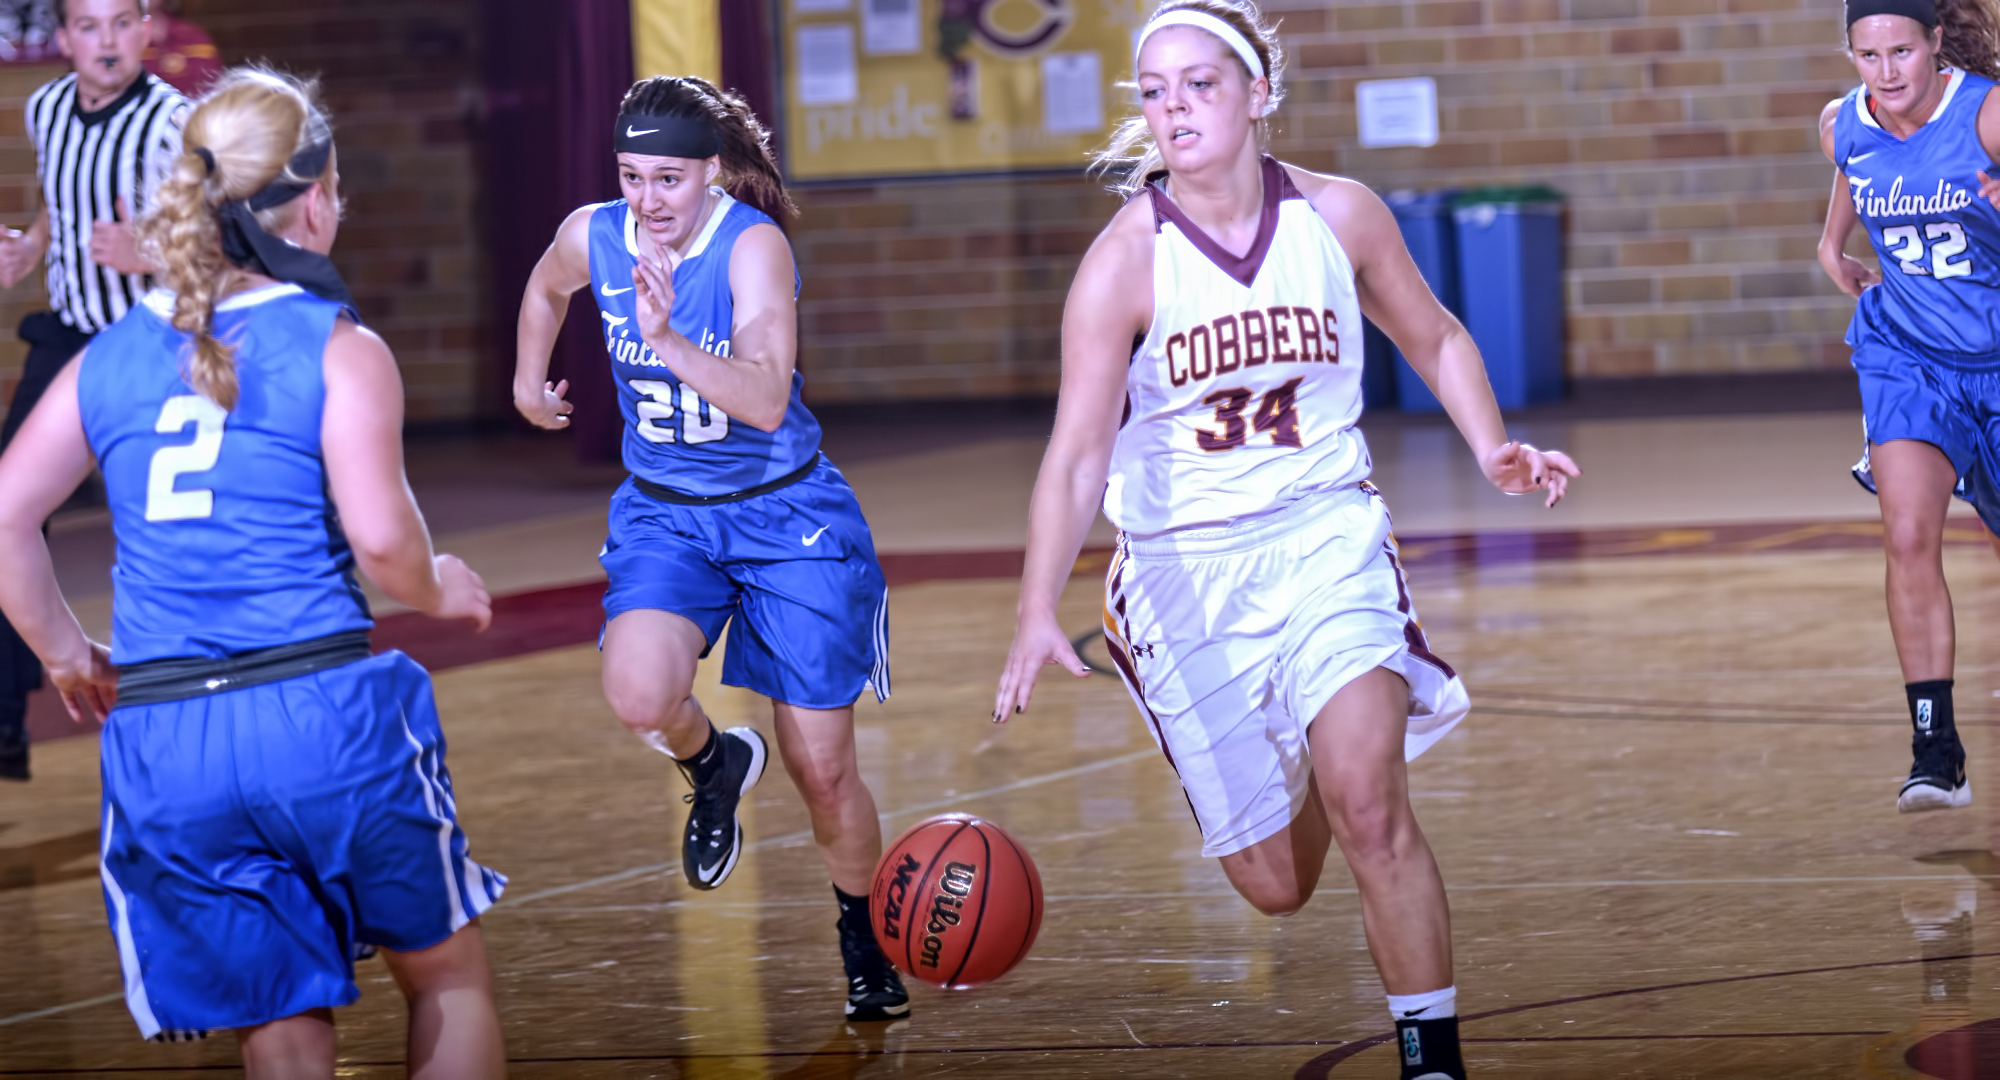 Junior Grace Wolhowe brings the ball up the court during the Cobbers' 95-52 win over Finlandia. Wolhowe finished with 13 points.